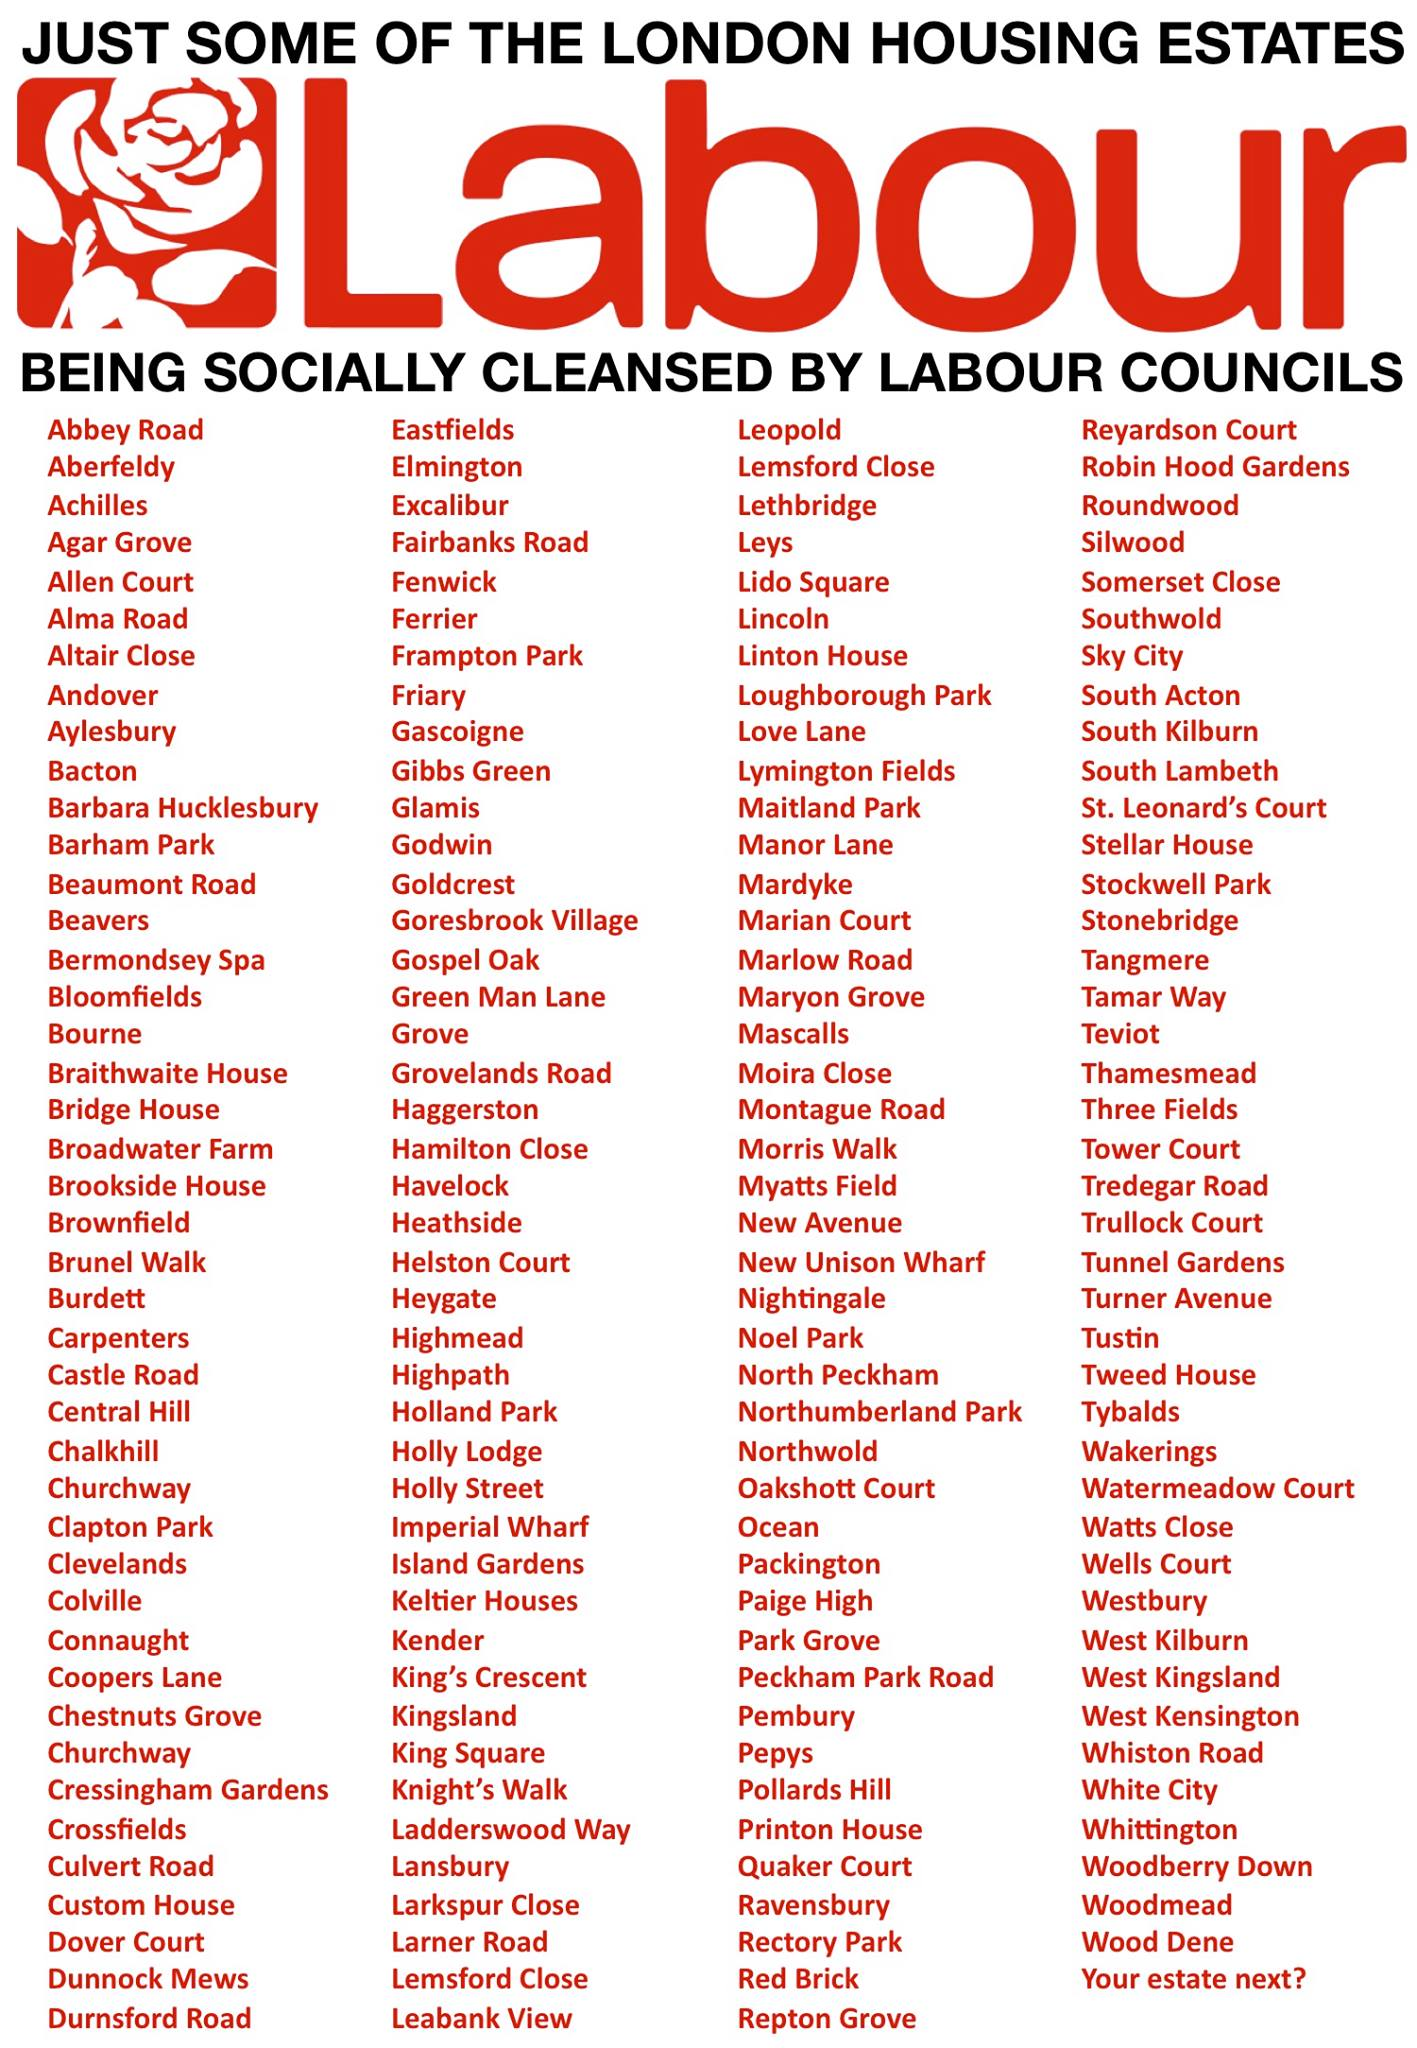 Architects for Social Housing's latest list of council estates in Labour boroughs that are threatened with destruction.